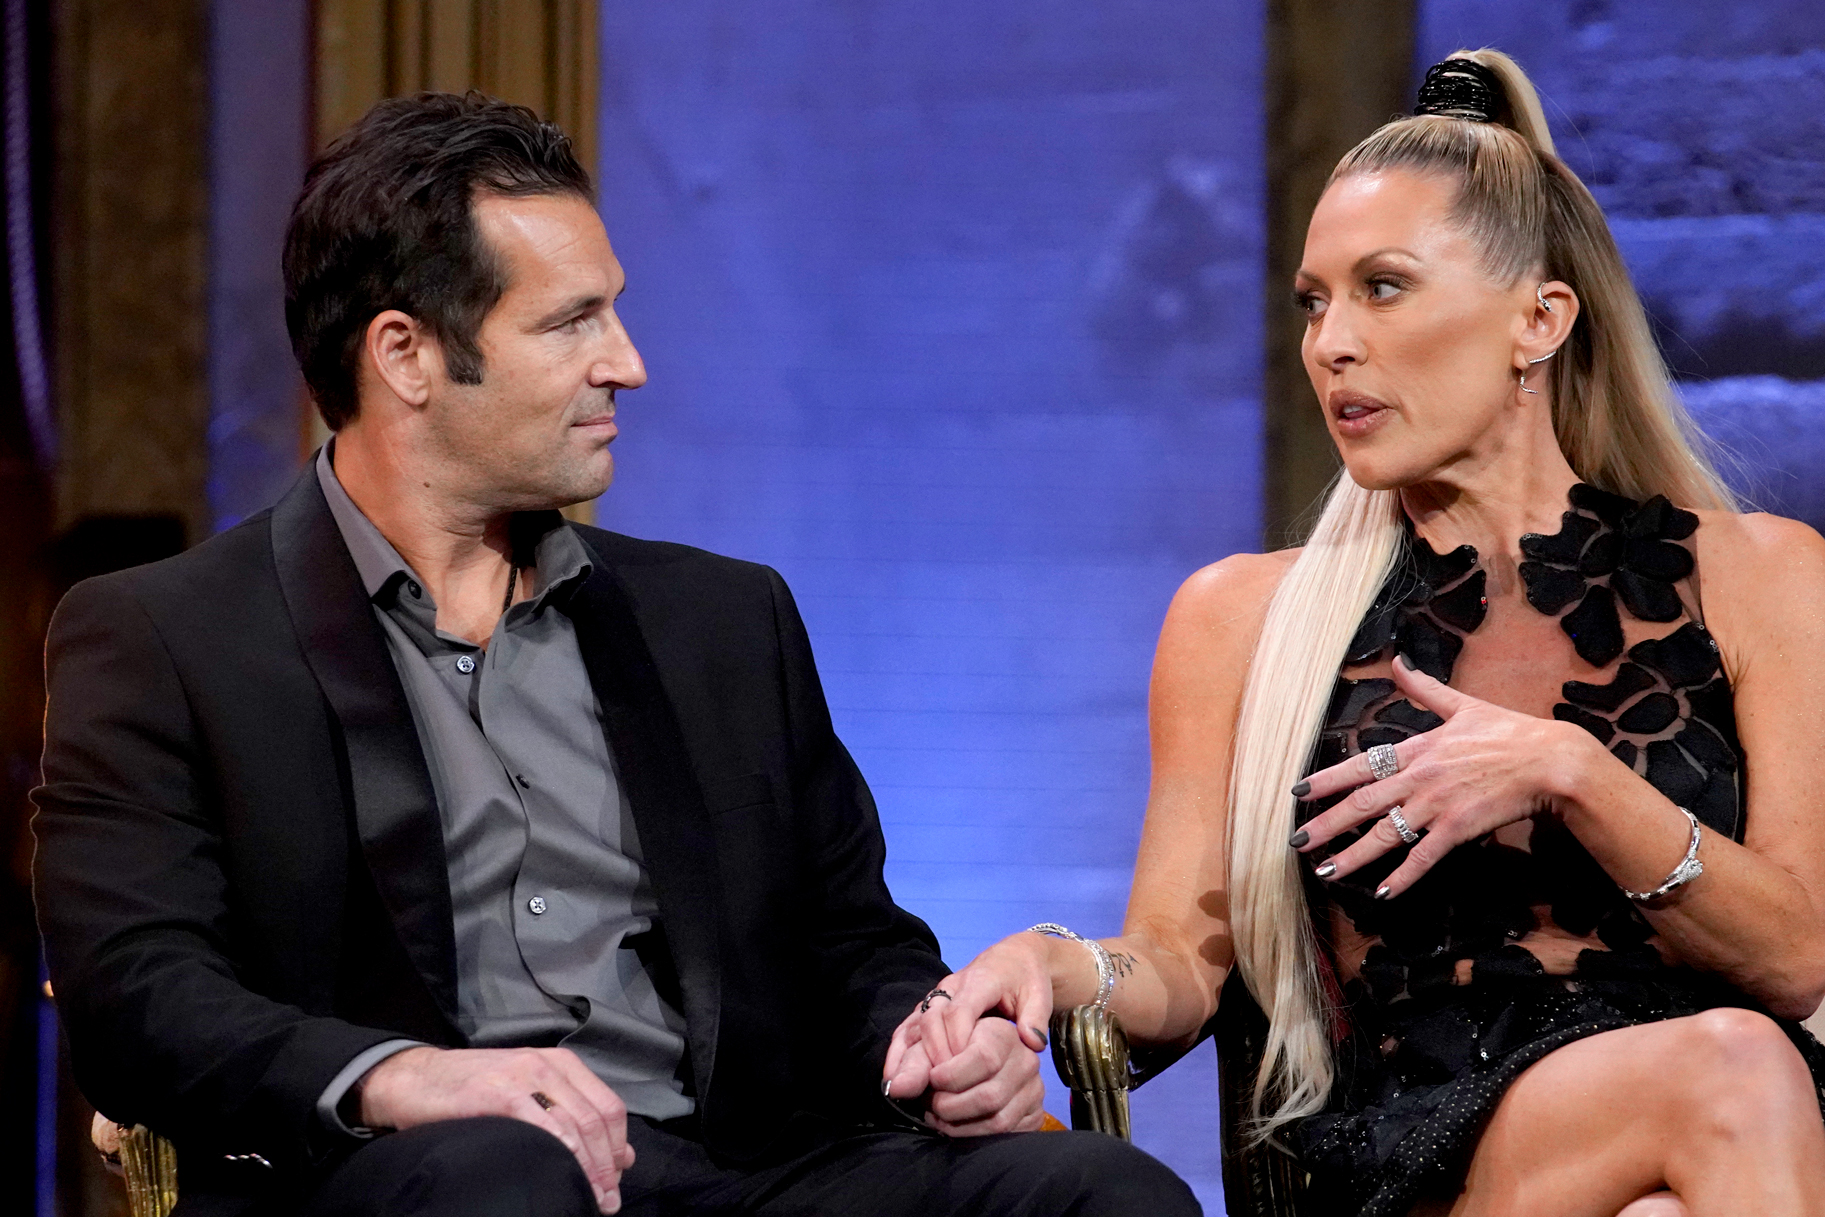 Braunwyn Windham-Burke and husband Sean Burke field questions during The Real Housewives of Orange County reunion special.